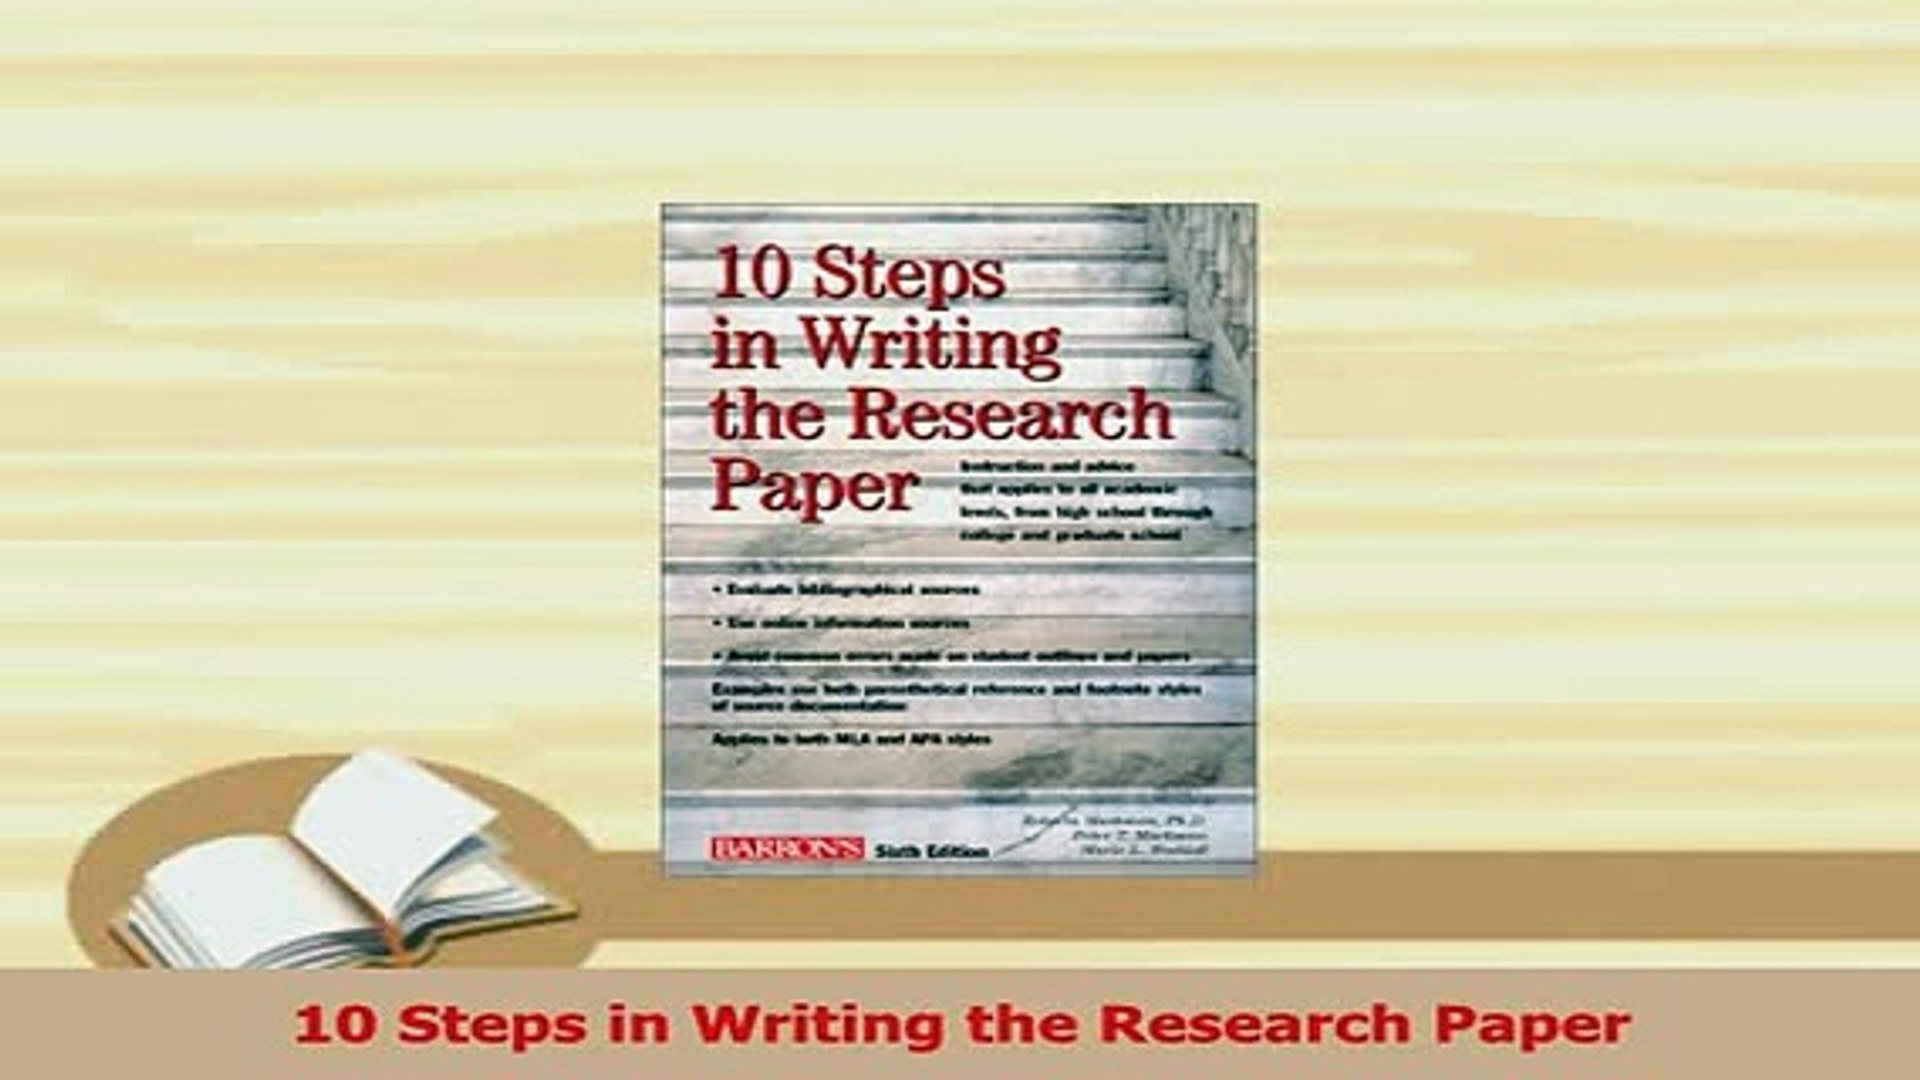 007 Steps For Writing Research Paper X1080 Unforgettable 10 A In The Markman Pdf To Write Basic Full